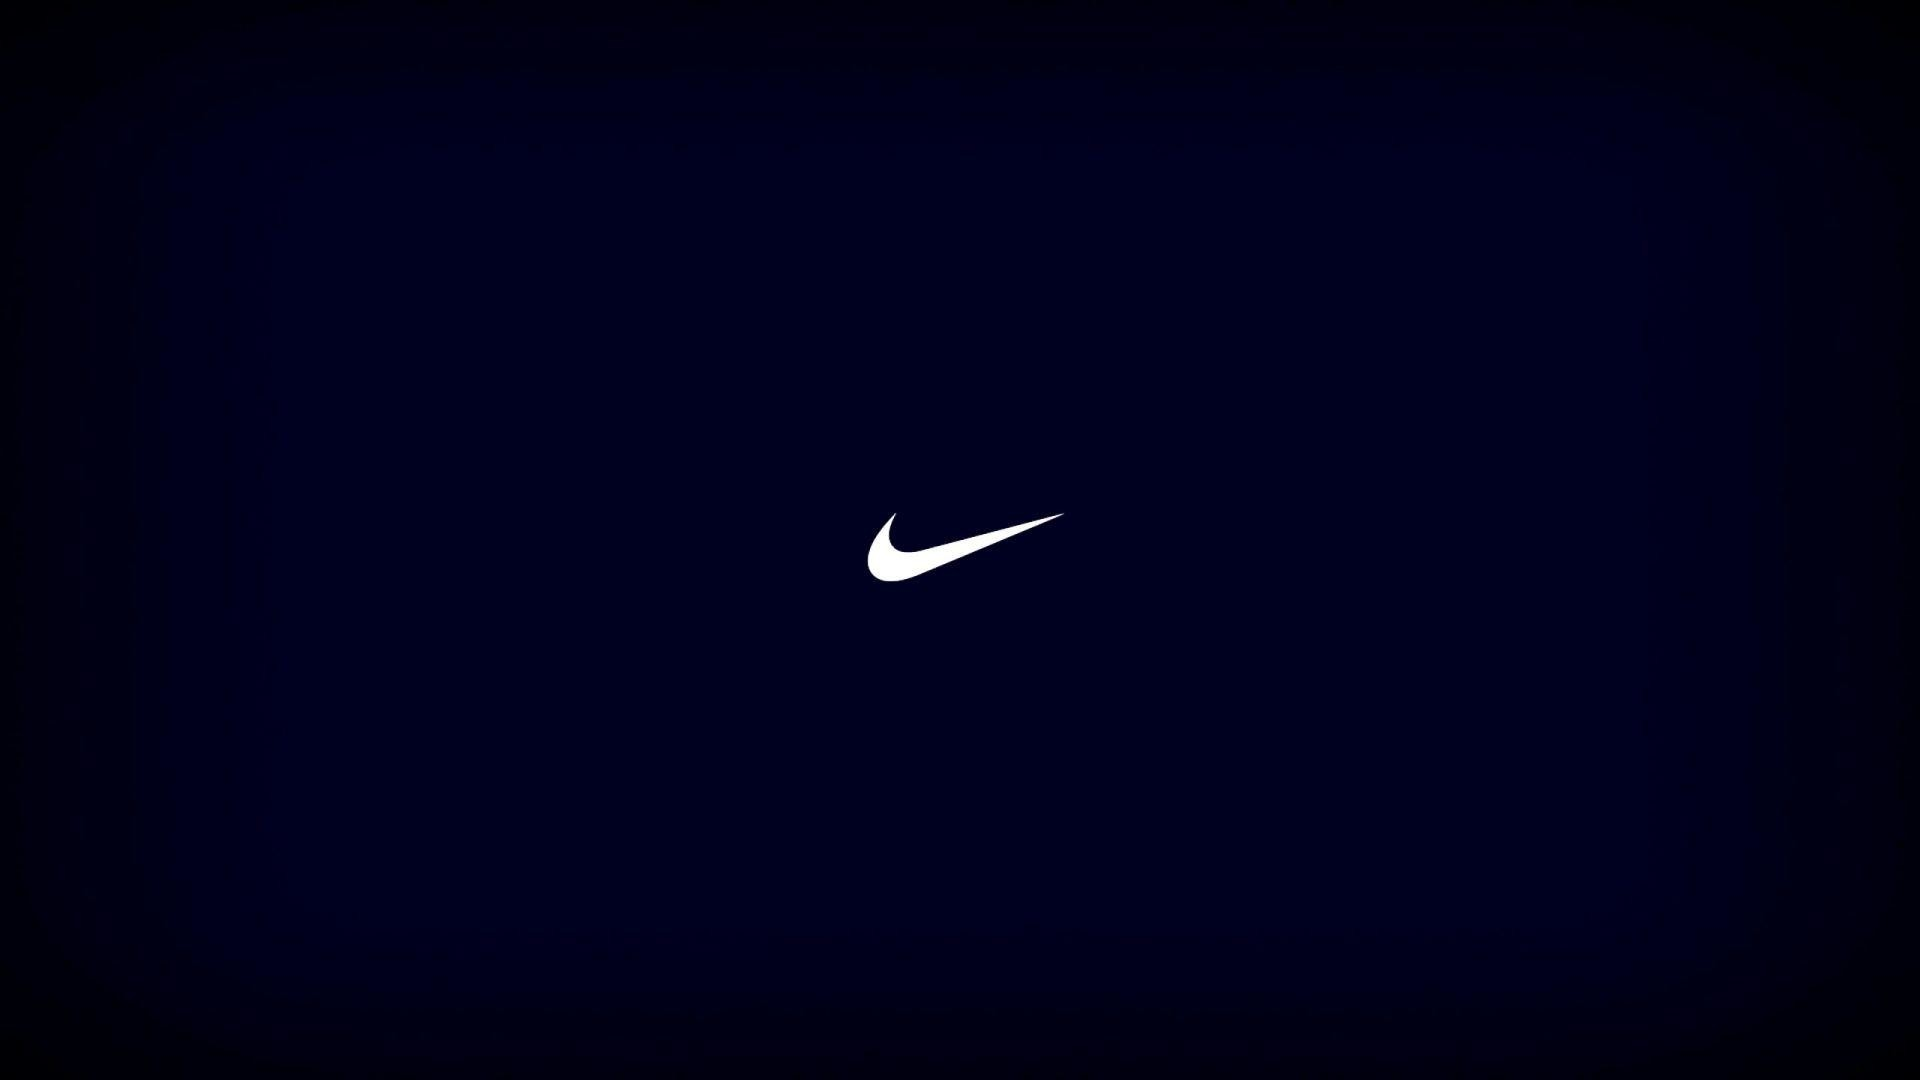 1920x1080 Nike Logo Backgrounds - Wallpaper Cave